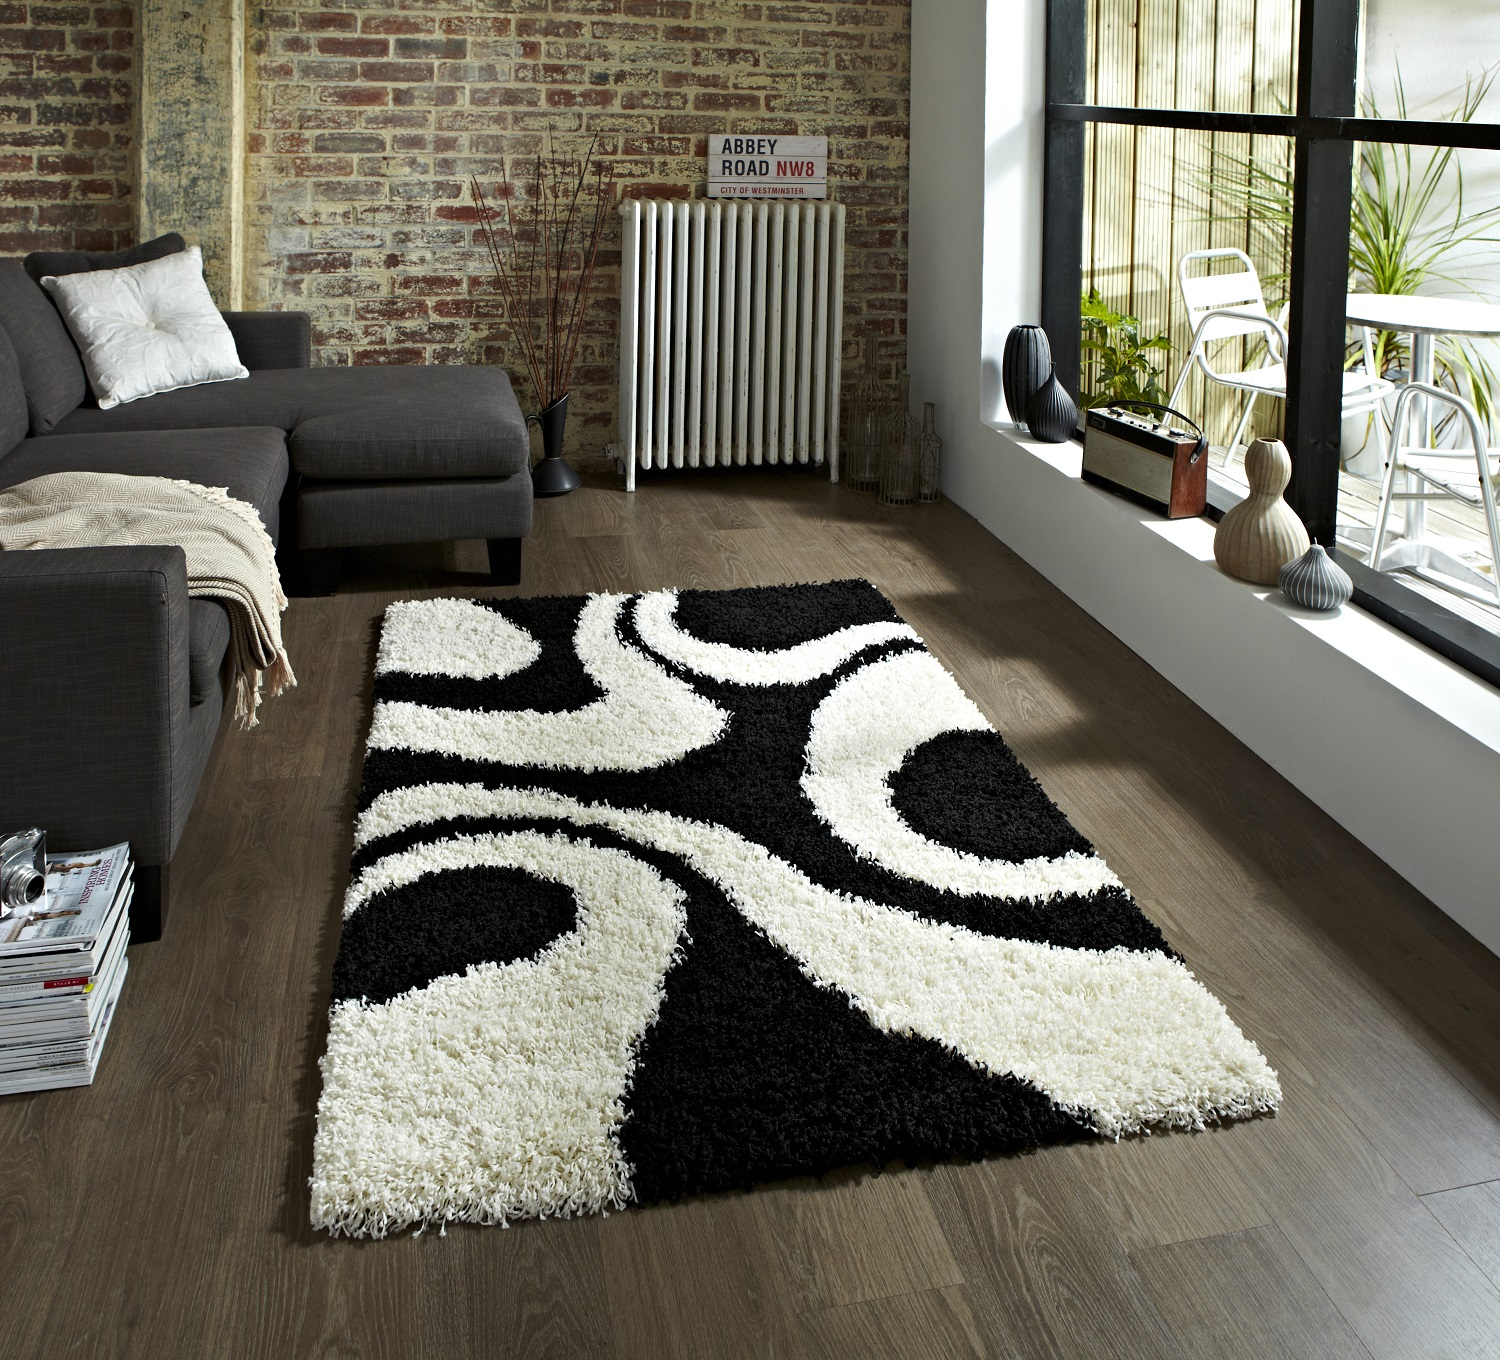 Black And White Rug Ebay Uk: Shaggy Pile Rug Or Runner Machine Made Warped Circle